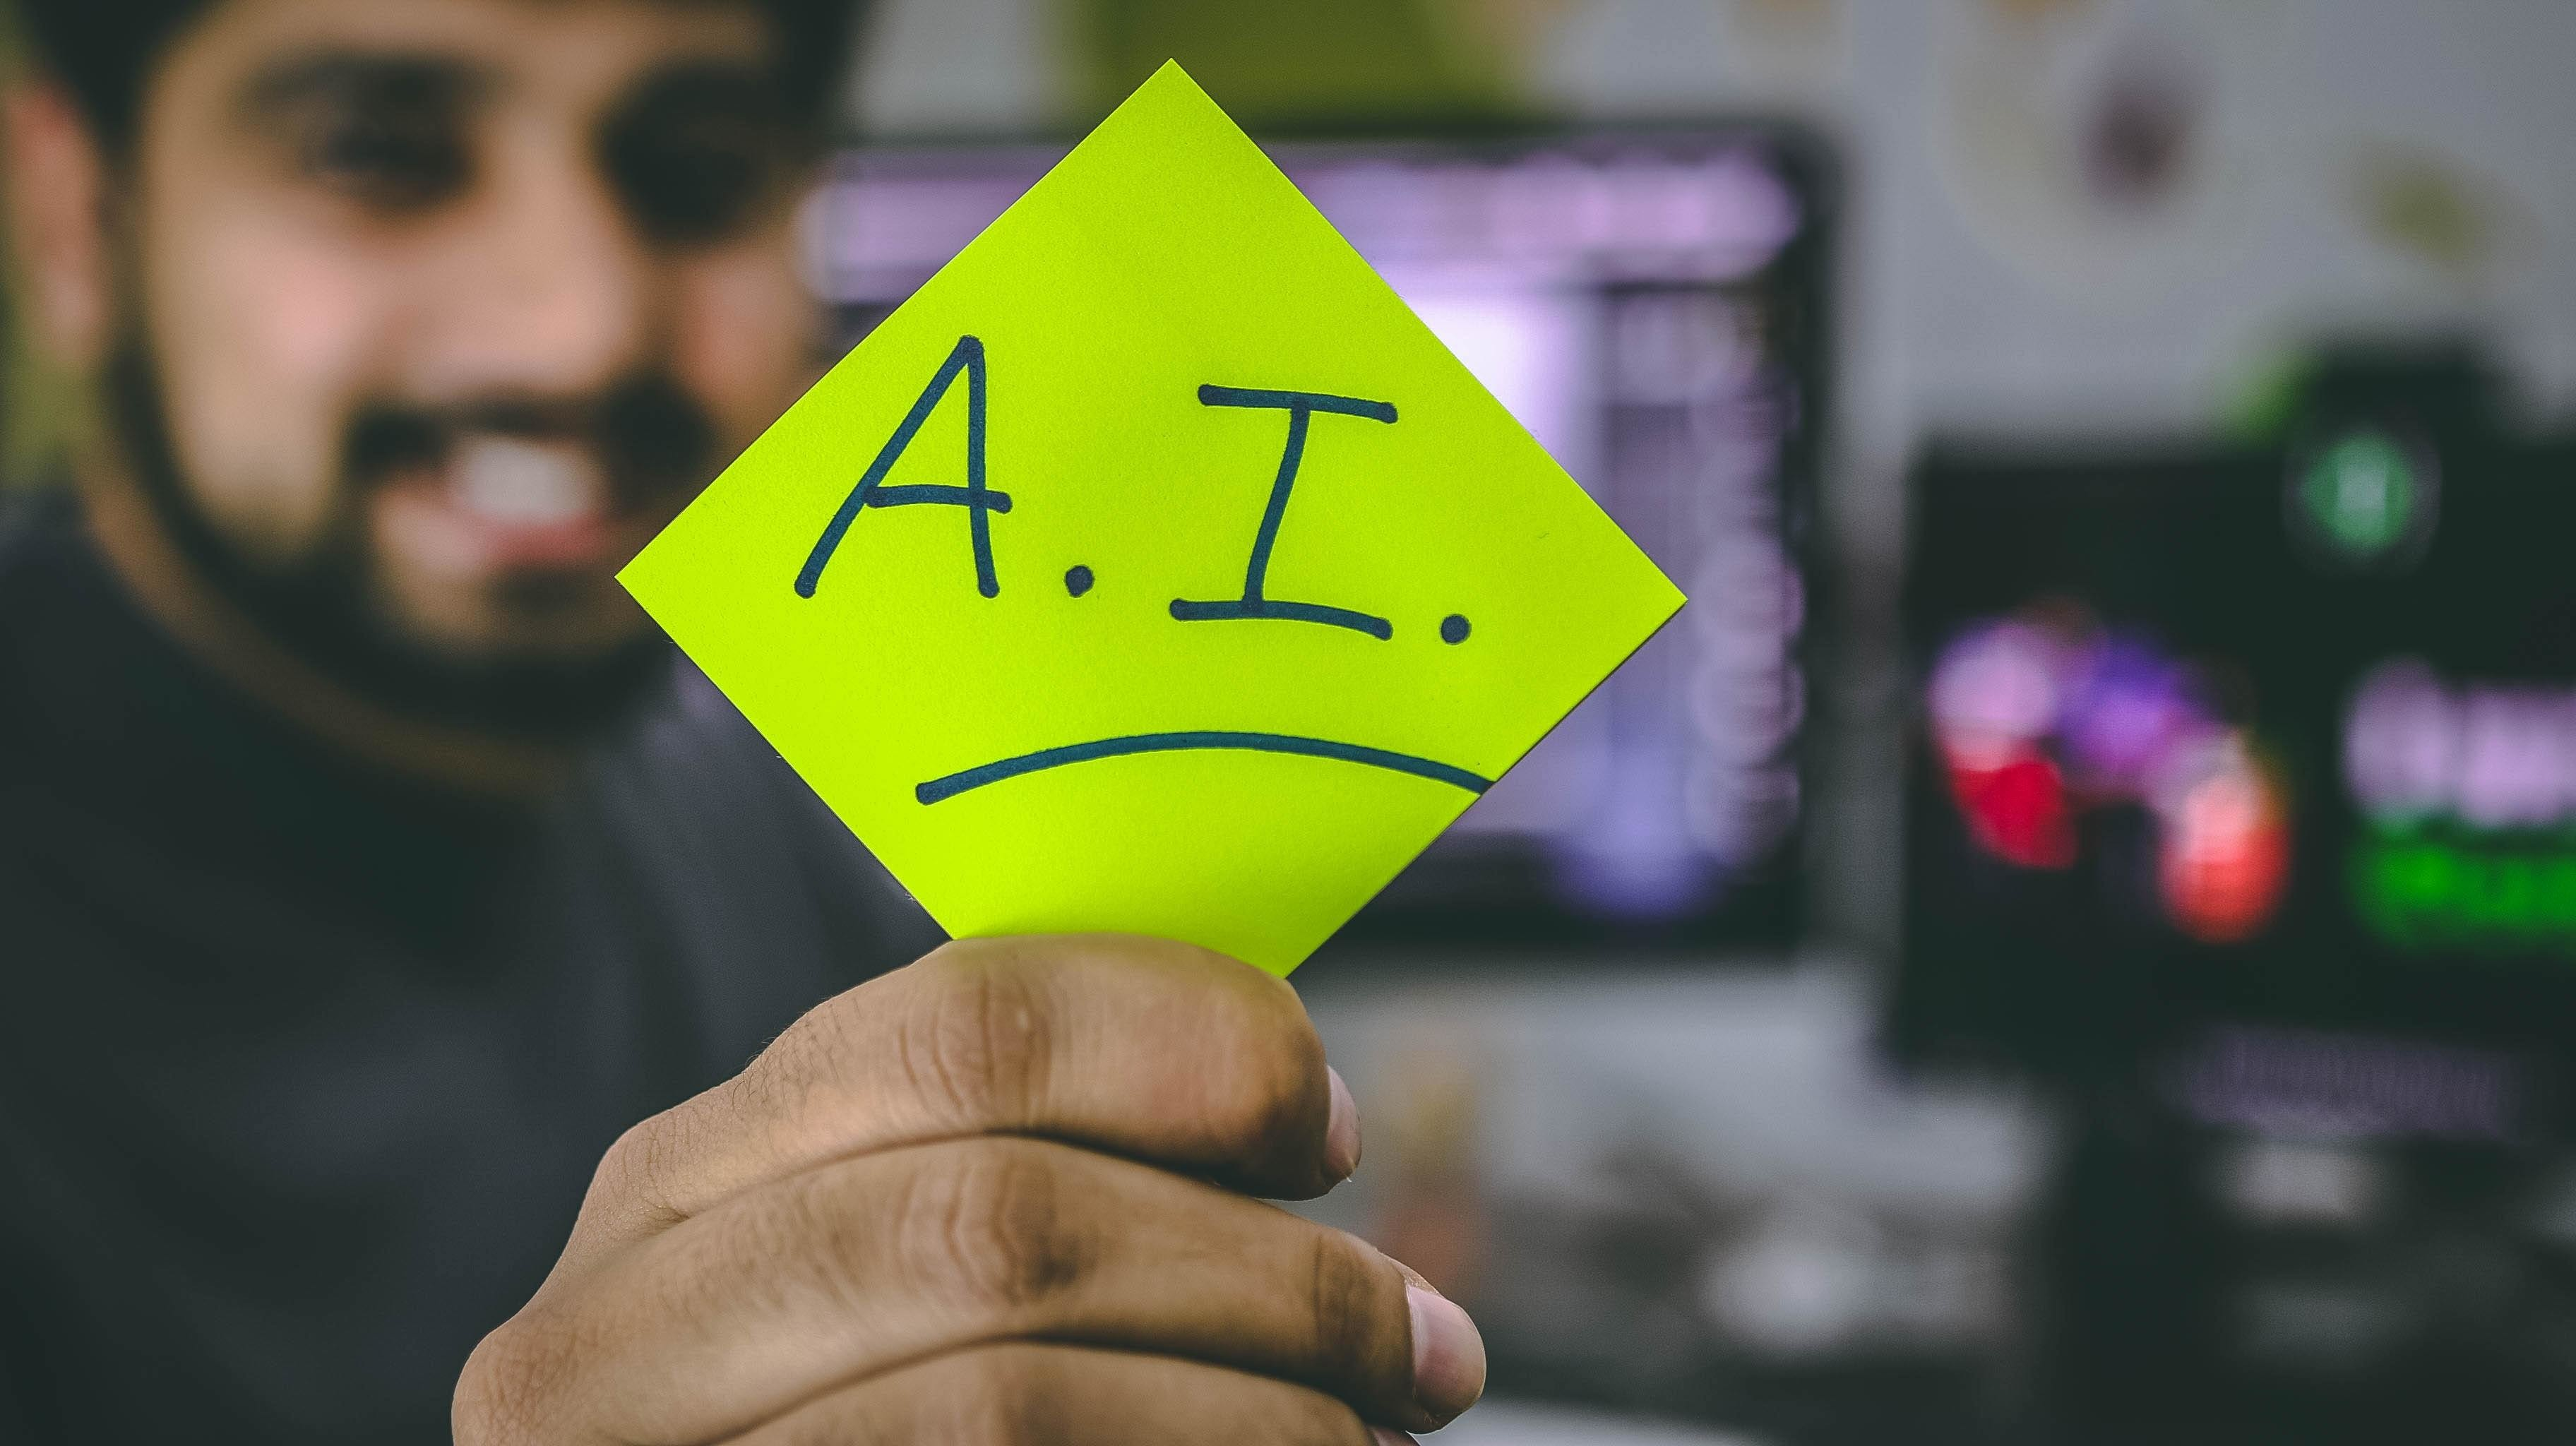 Does your company have an AI fairness charter?